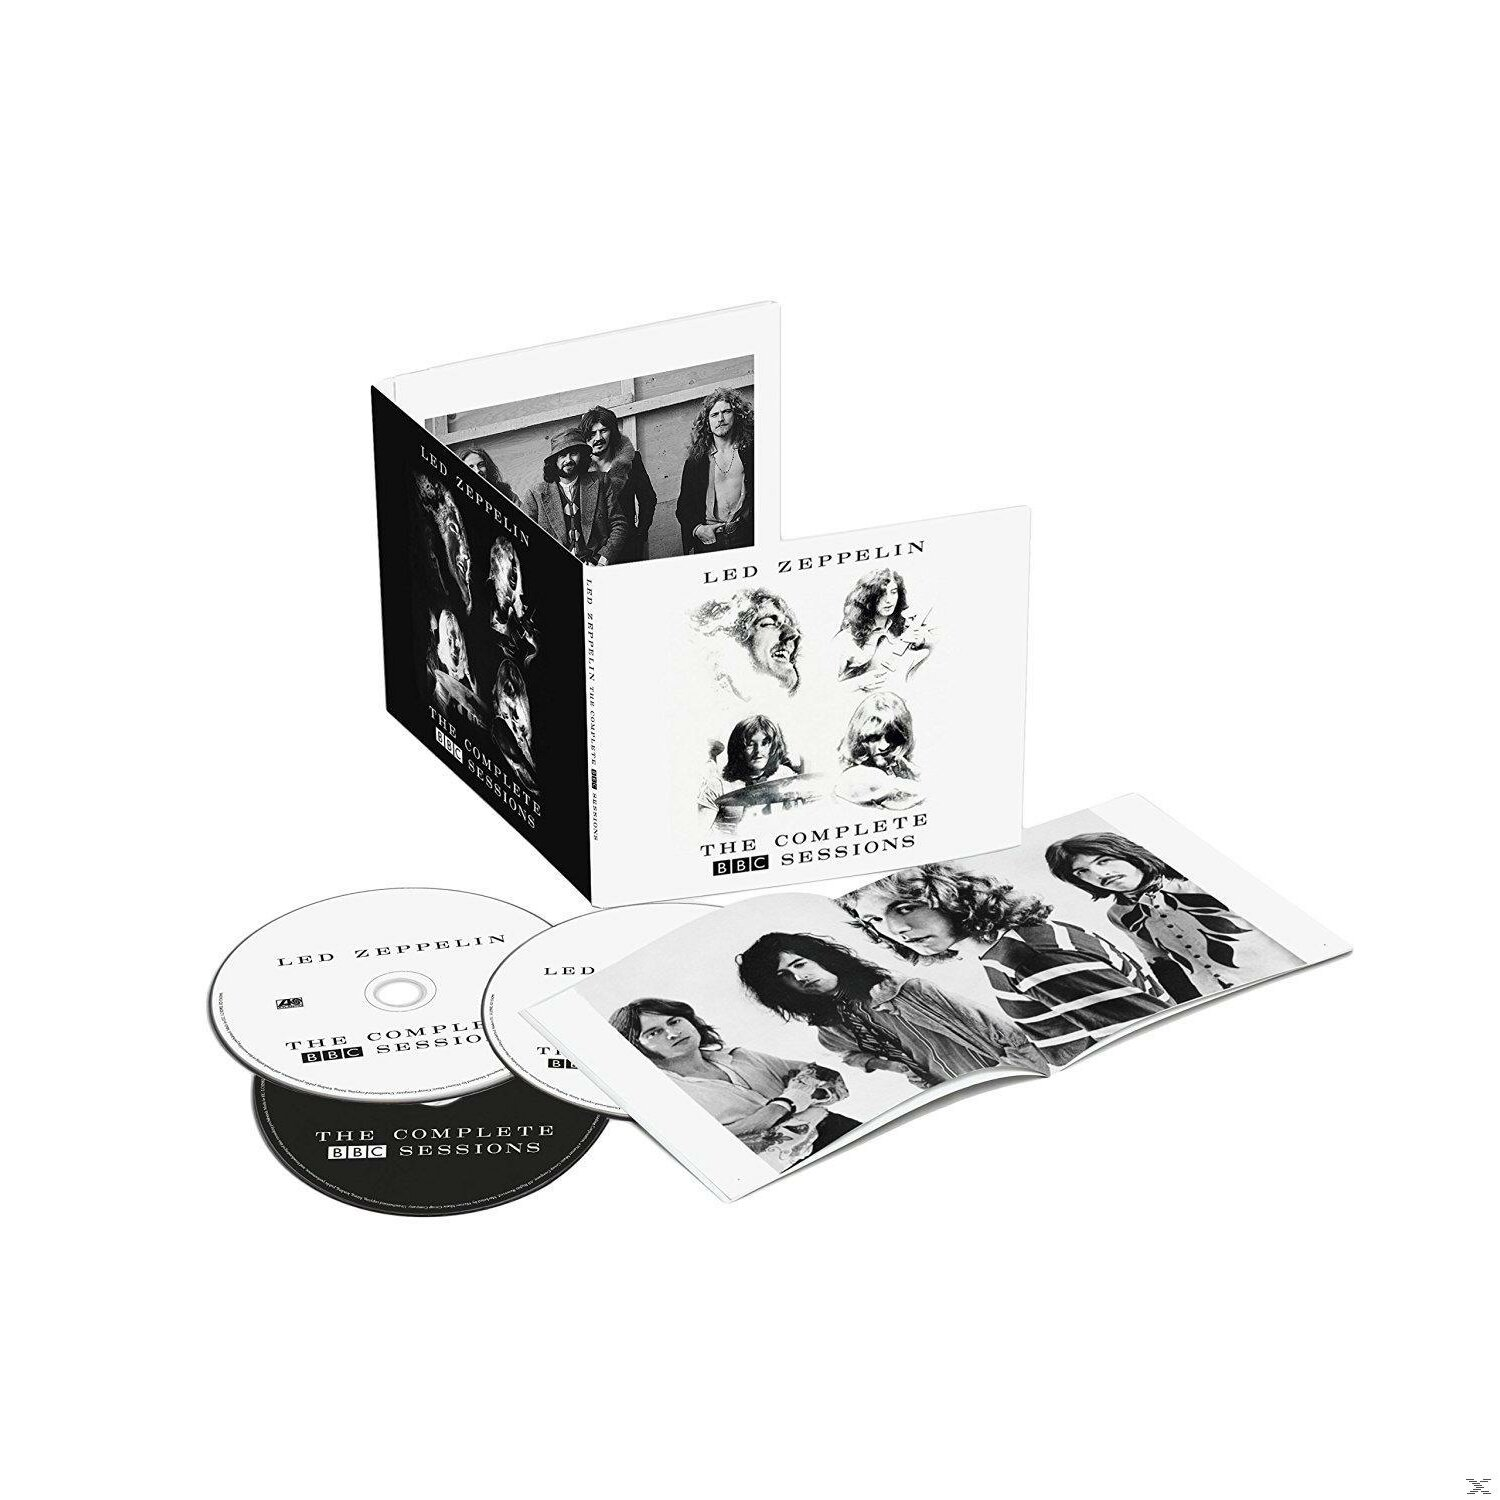 The Complete BBC Sessions (Deluxe Edition)